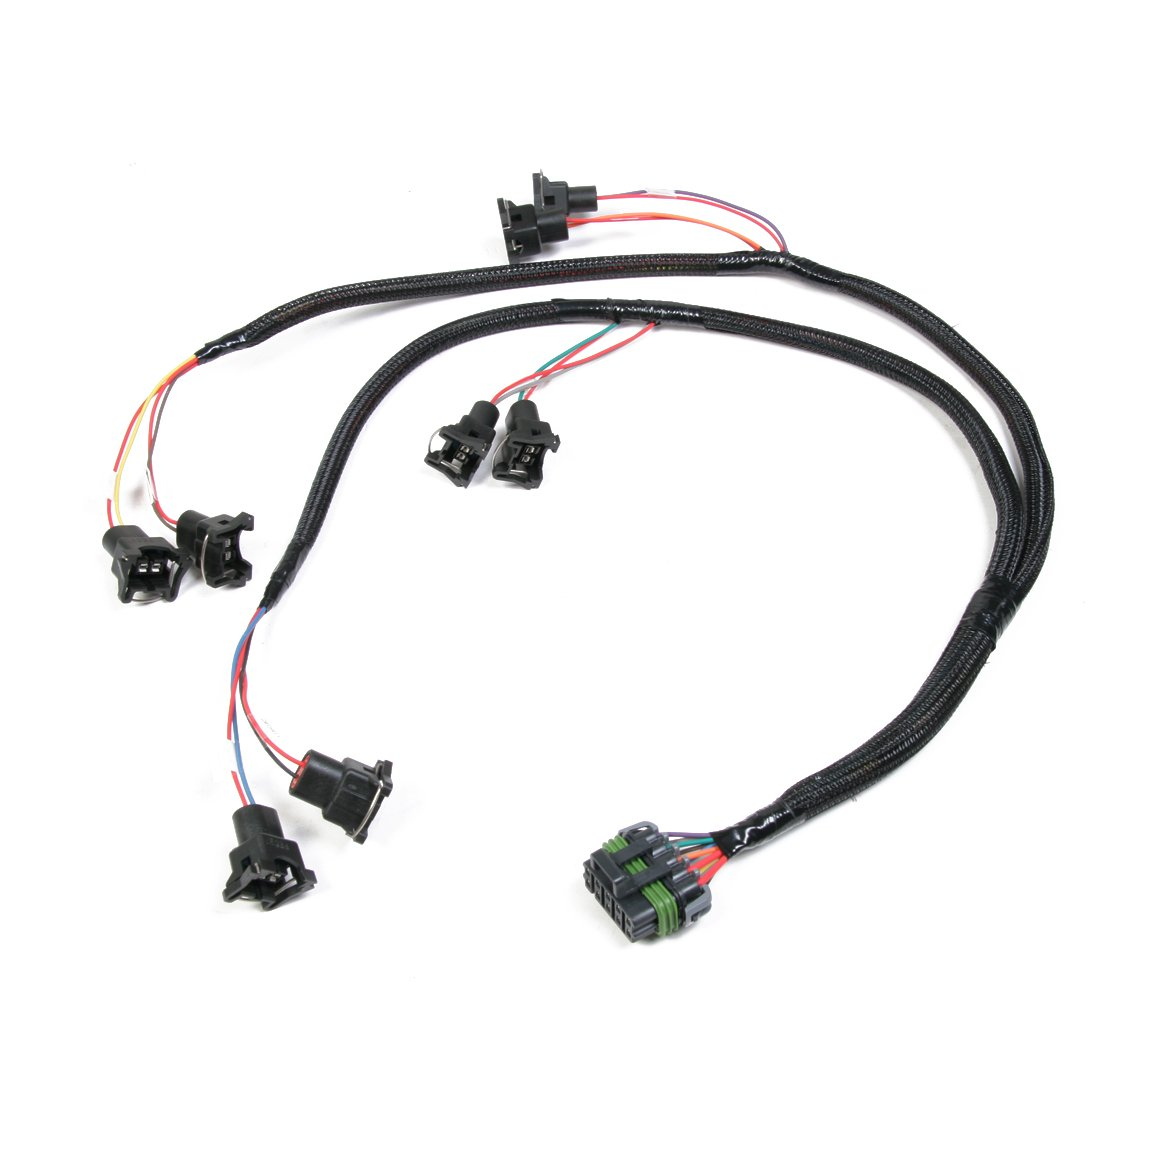 Holley Efi 558 102 Ls1 6 24x 1x Engine Main Harness Wiring Diagram Click The Image To V8 Over Manifold Bosch Style Injector